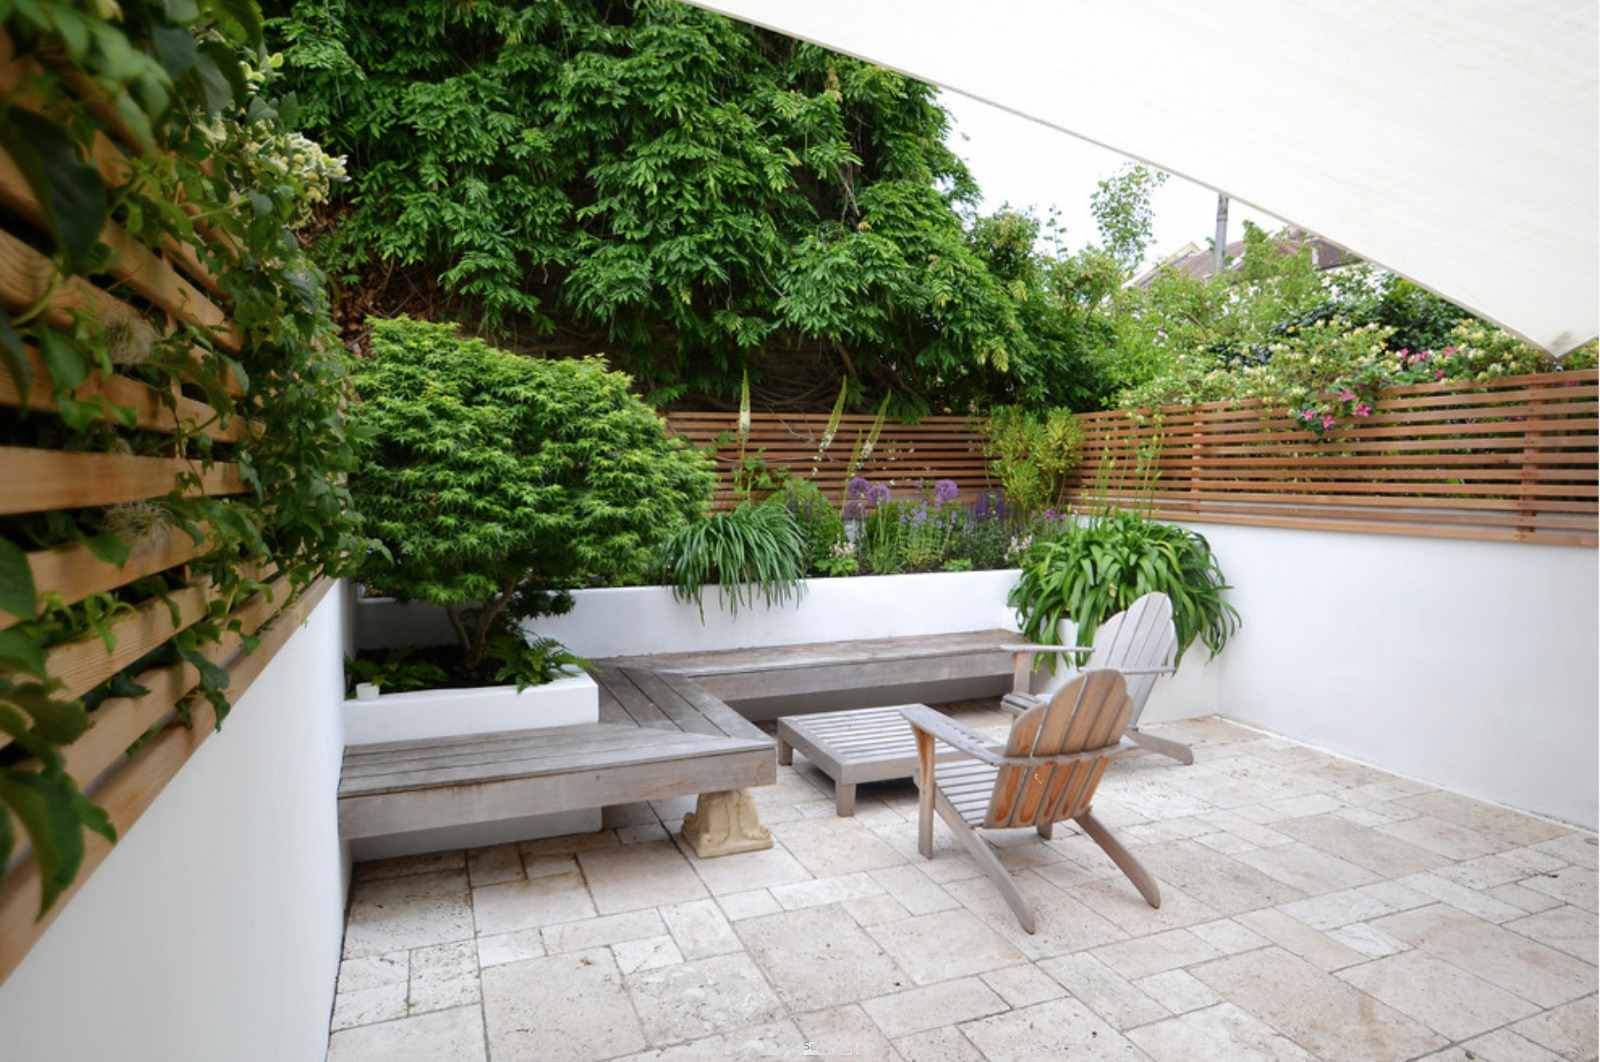 Living wall near wooden pallets along with bench and chair.